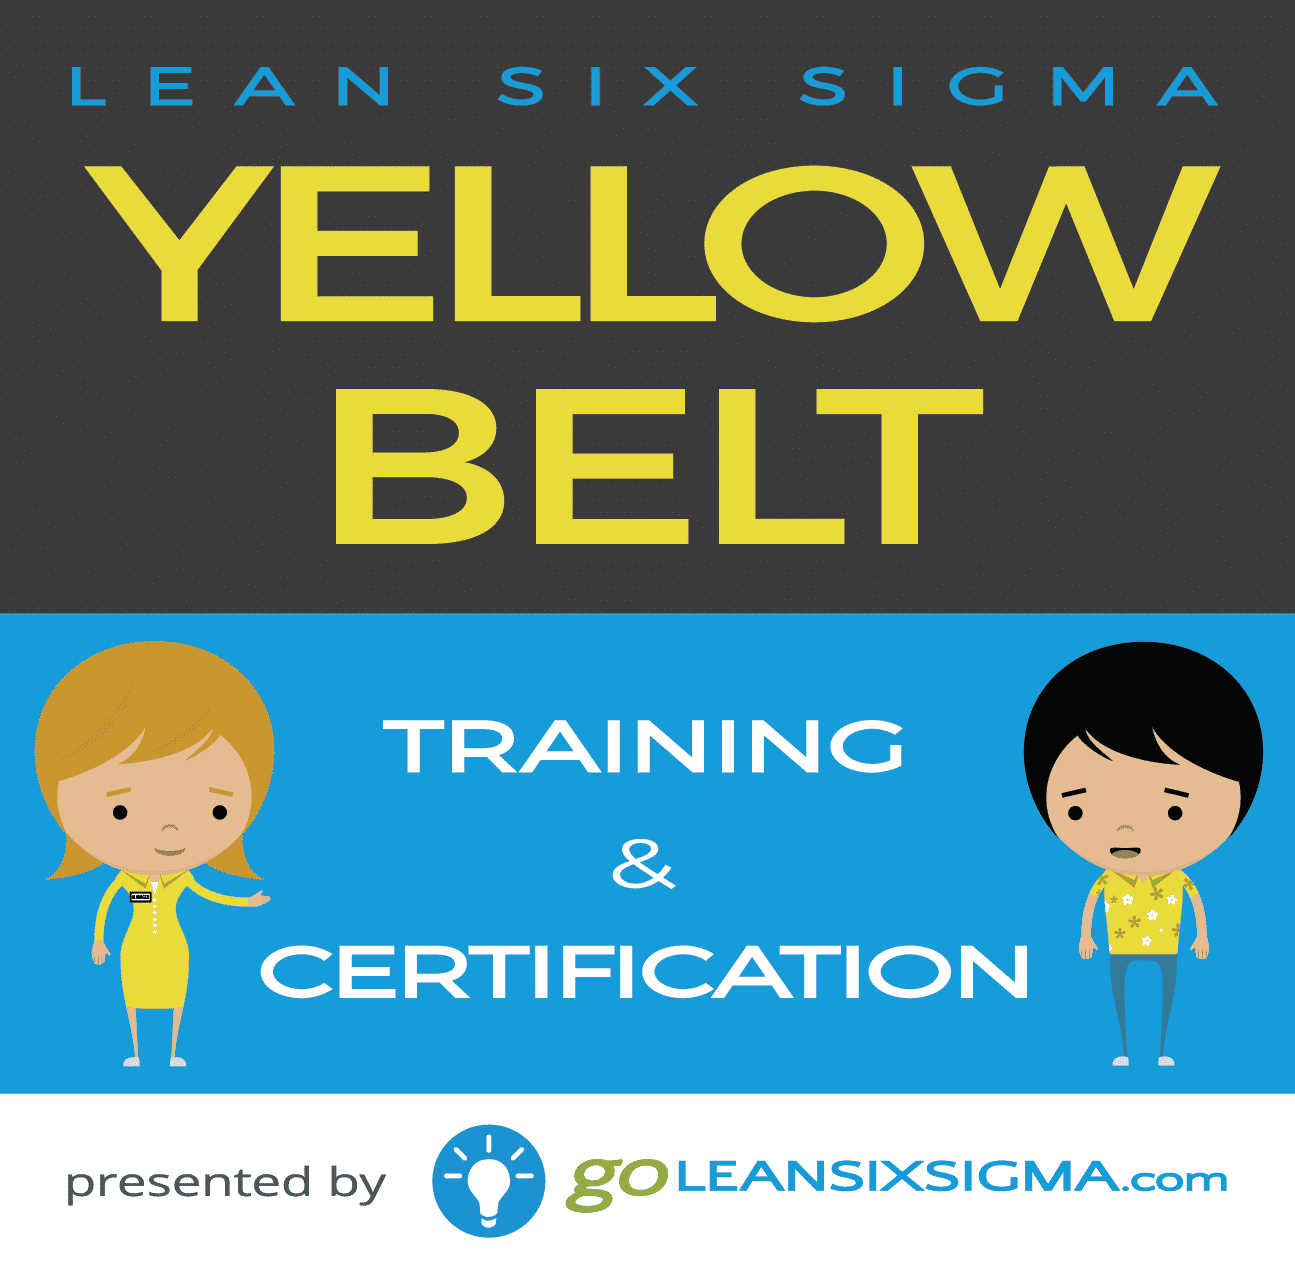 Lean six sigma training certification faq goleansixsigma what did you think of the yellow belt training 1betcityfo Gallery